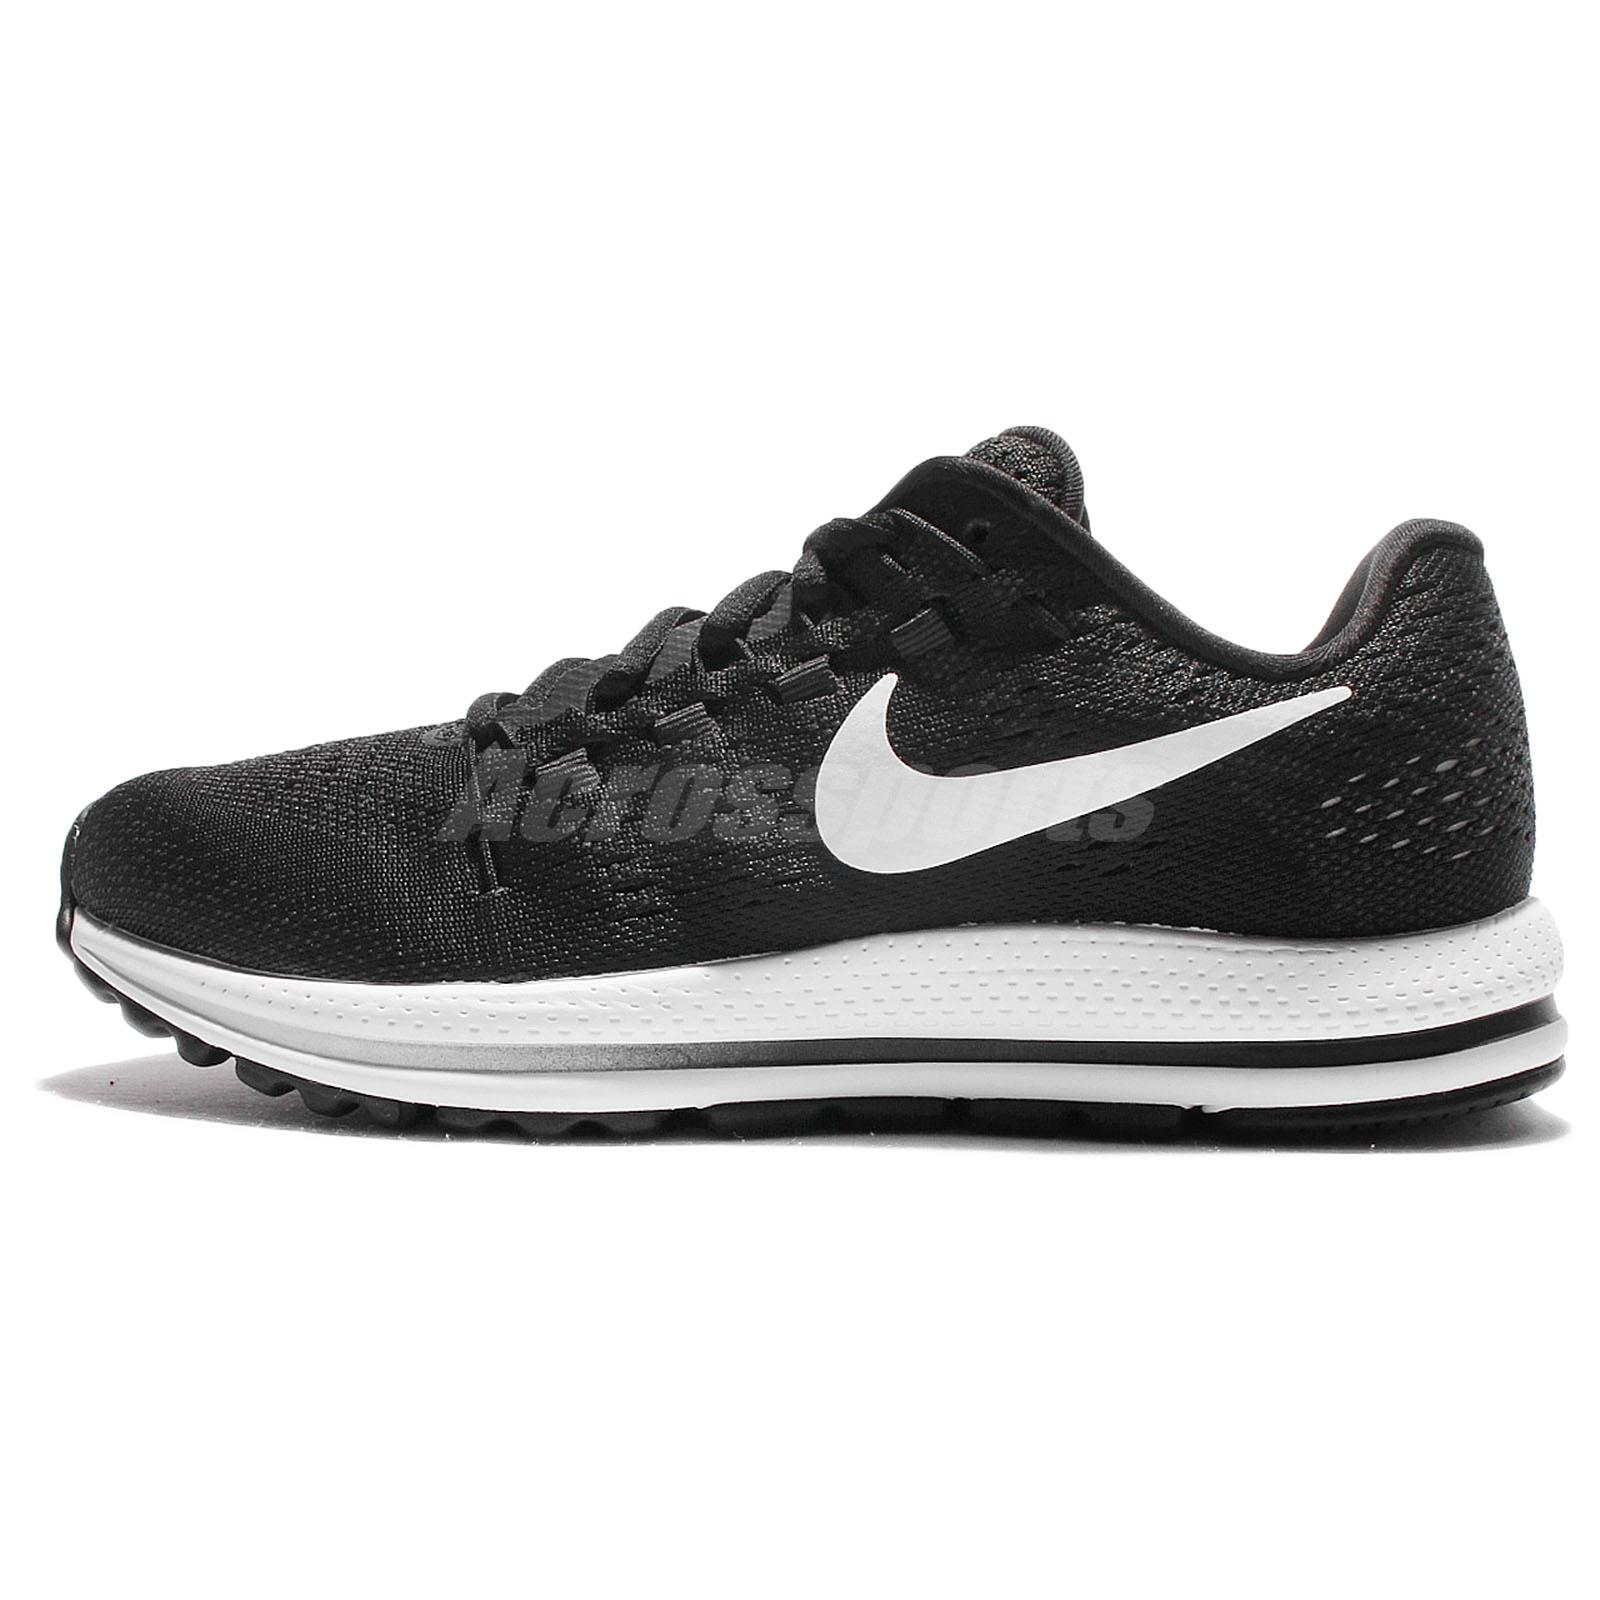 a75c319fc53 Nike Wmns Air Zoom Vomero 12 Black White Women Running Shoes Sneakers  863766-001